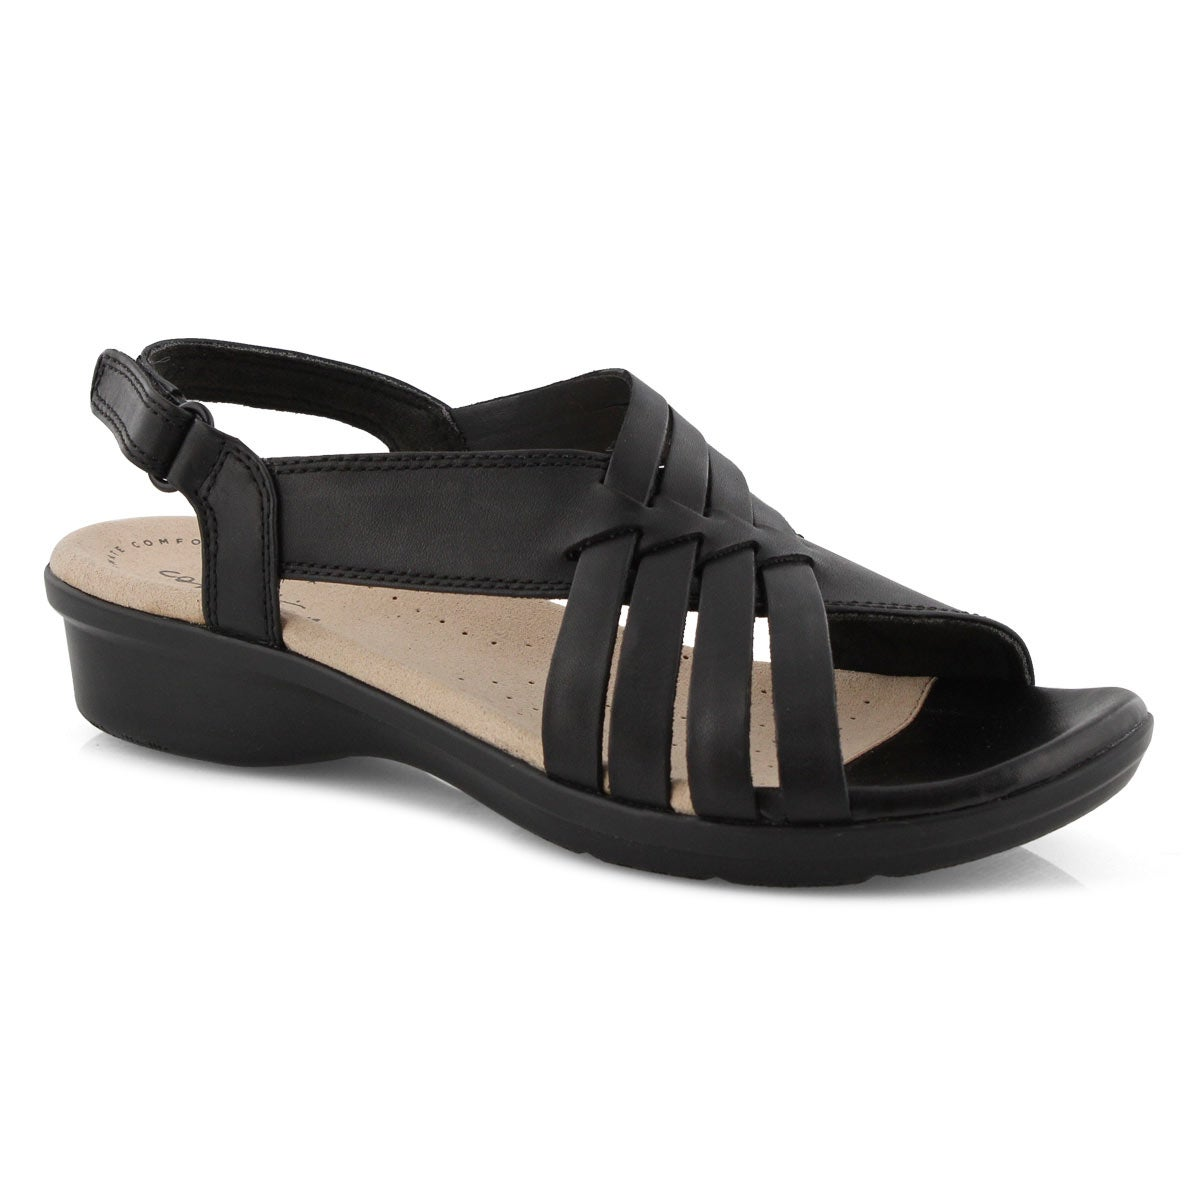 Lds Loomis Cassey black casual sandal